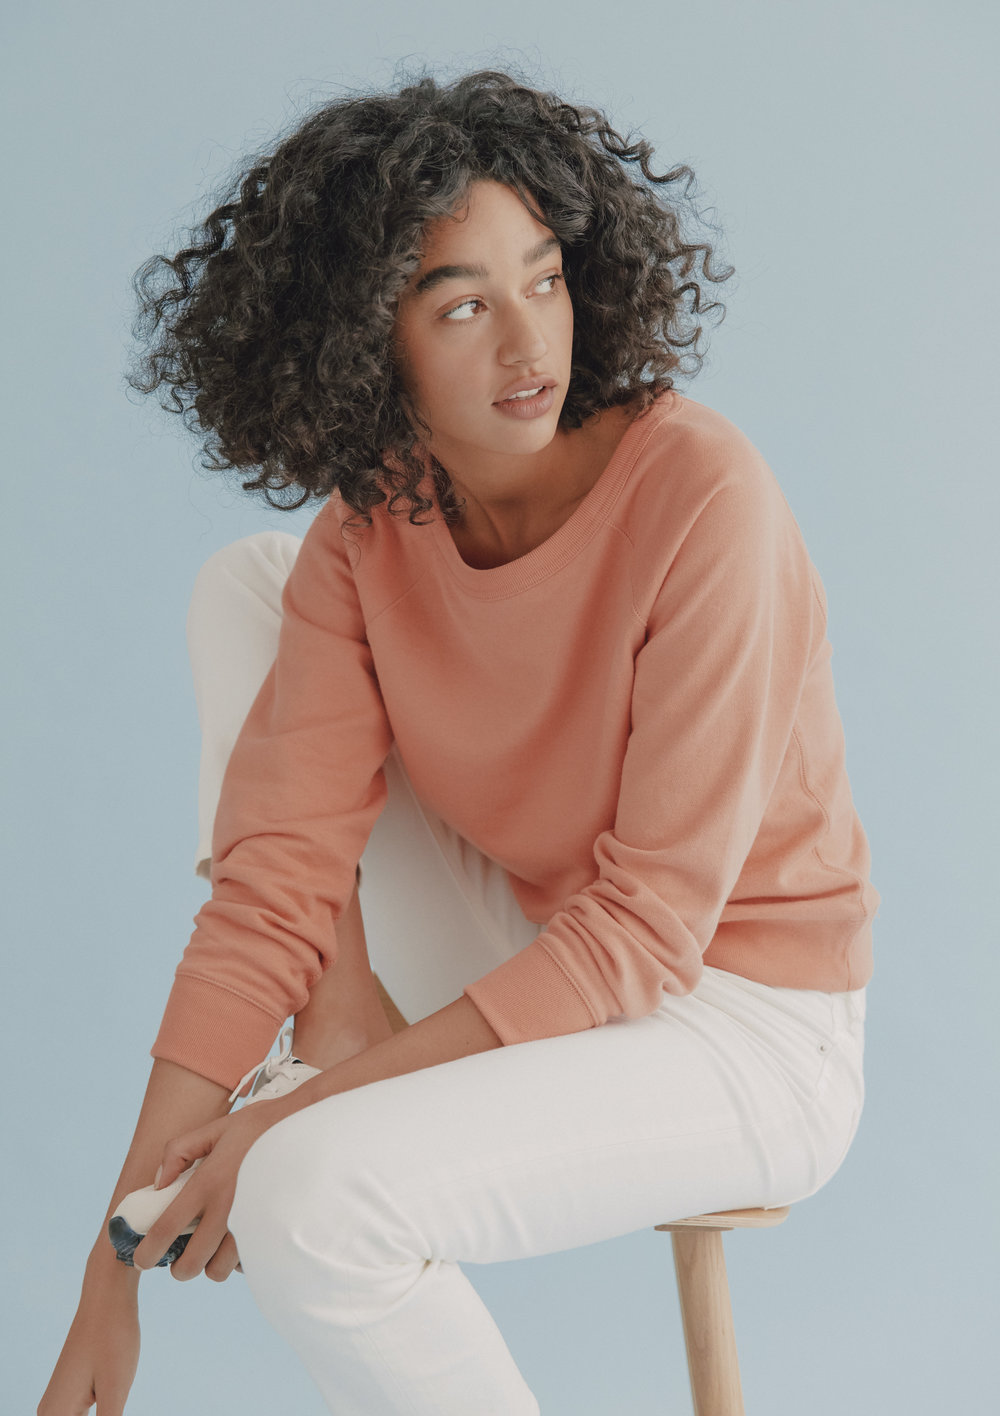 20180117_DBaum_Everlane_Editorial_Damaris37805.jpg